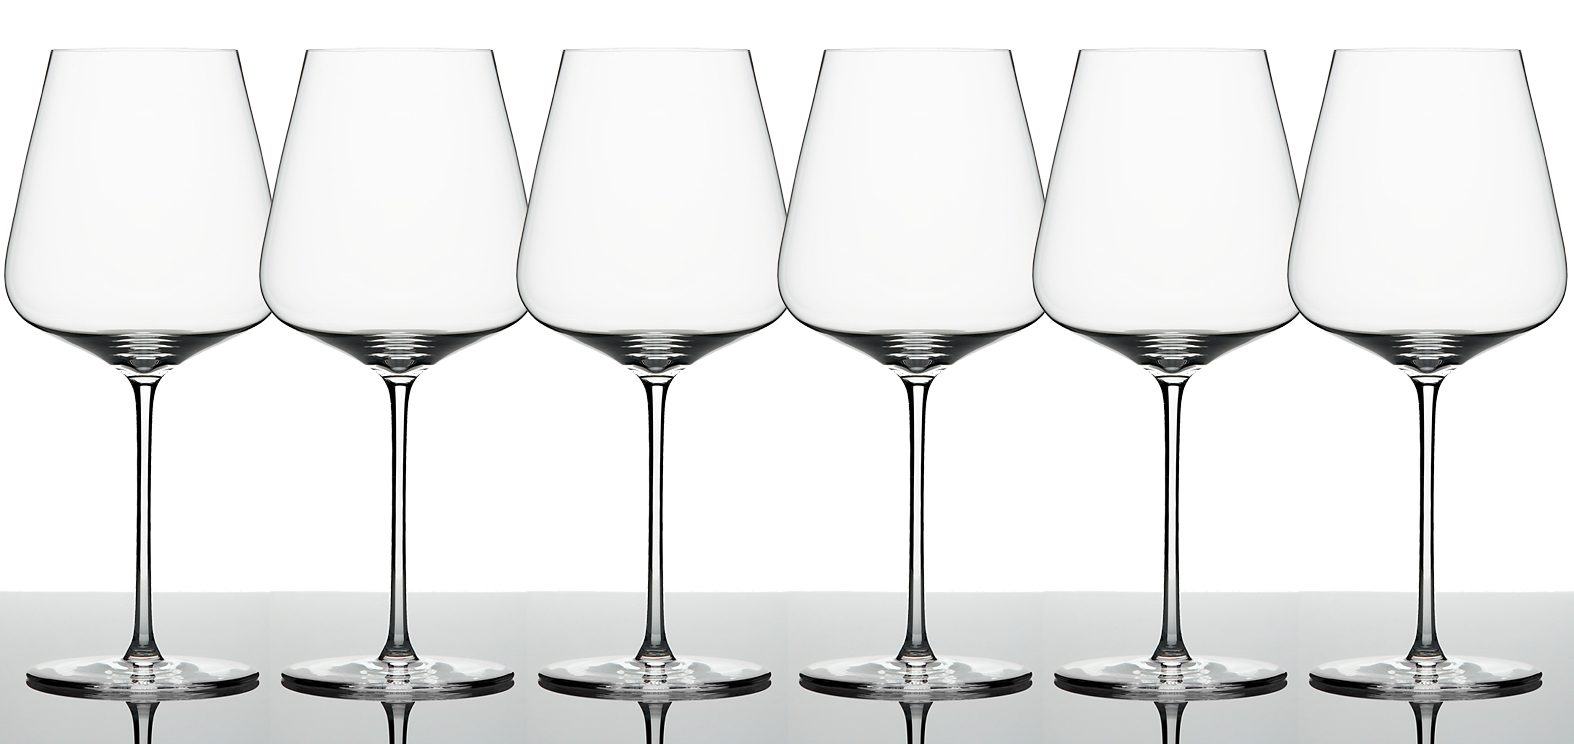 Zalto Denk Art Bordeaux-Glas 6er-Set »Zalto Denk Art Bordeaux-Glas 6er-Set«